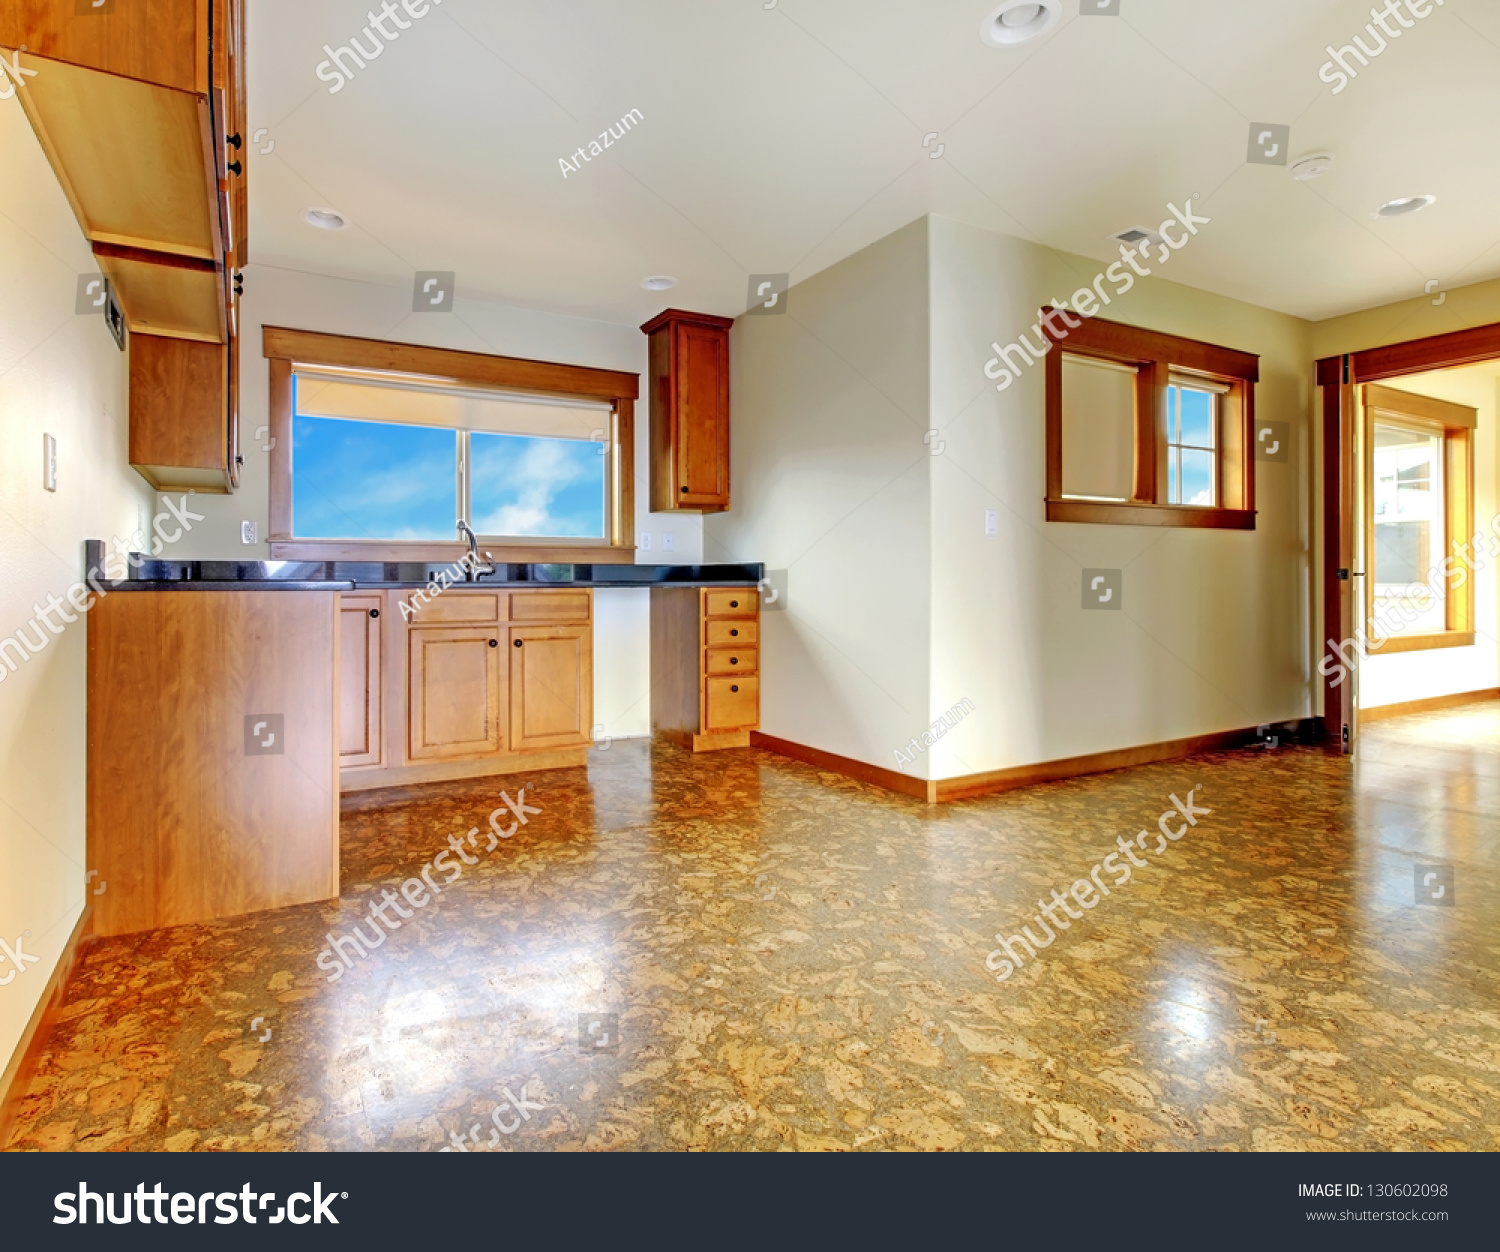 Luxury Kitchen Room Interior Bright Wooden Stock Vector: Small Kitchen Apartment Above Garage New Stock Photo